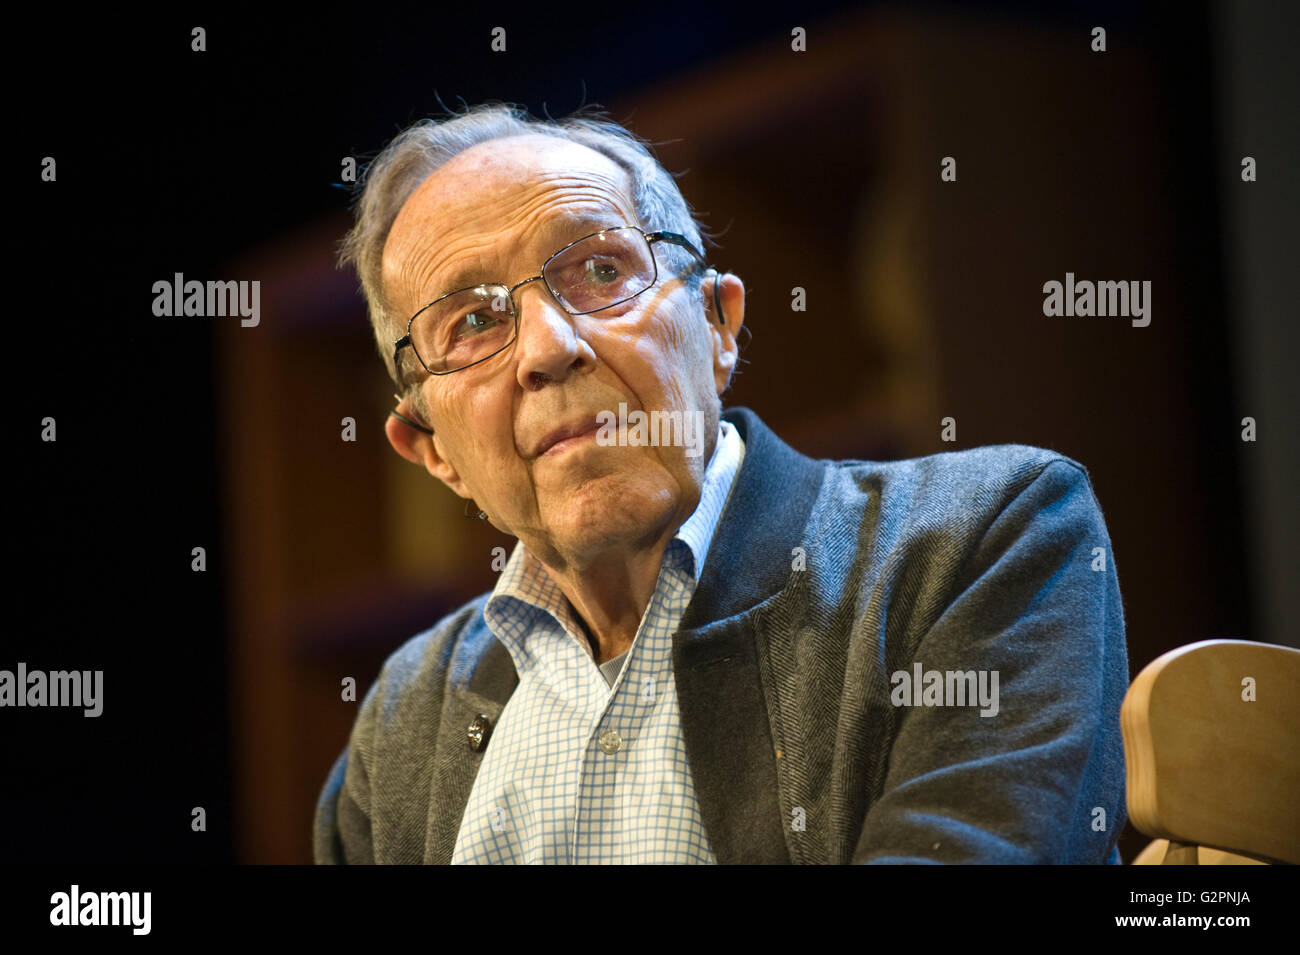 Hay-on-Wye, Wales, UK. 02nd June, 2016. William Perry, former USA Defence Secretary pictured at Hay Festival 2016 - Stock Image